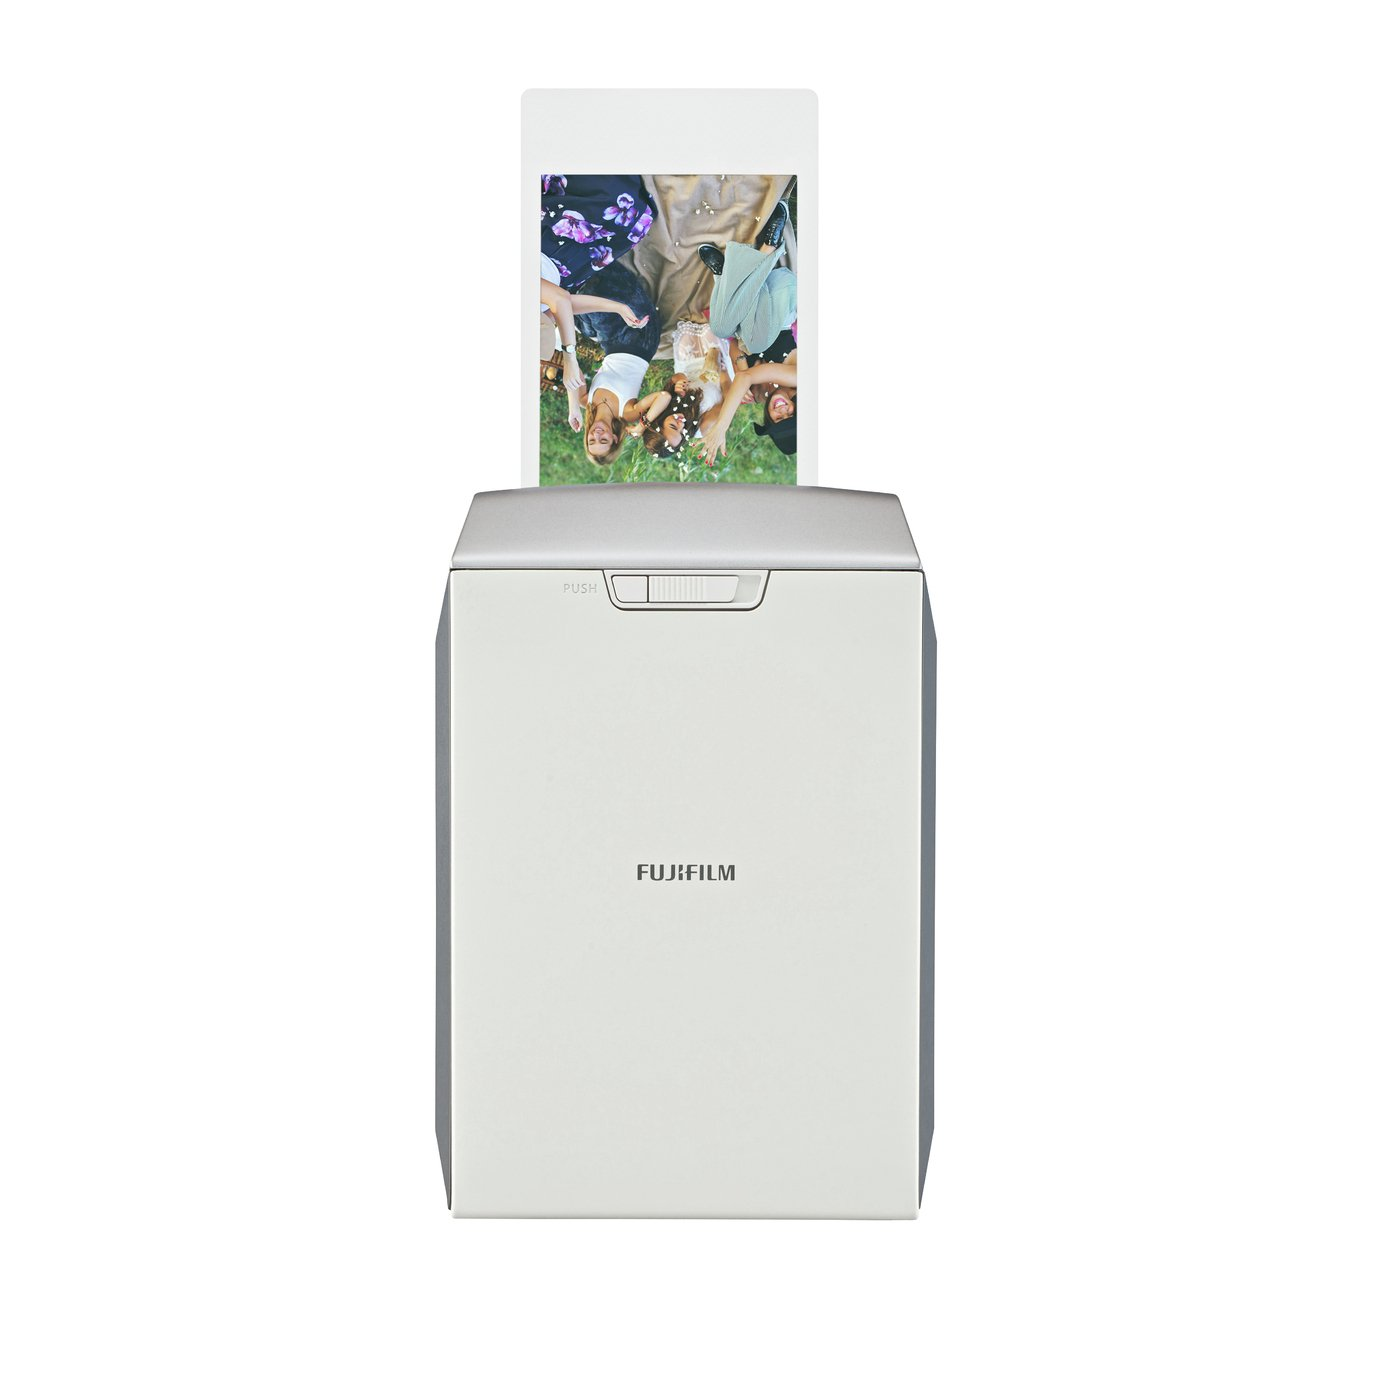 instax Share SP-2 Photo Printer with 10 shots - Silver from Instax Share